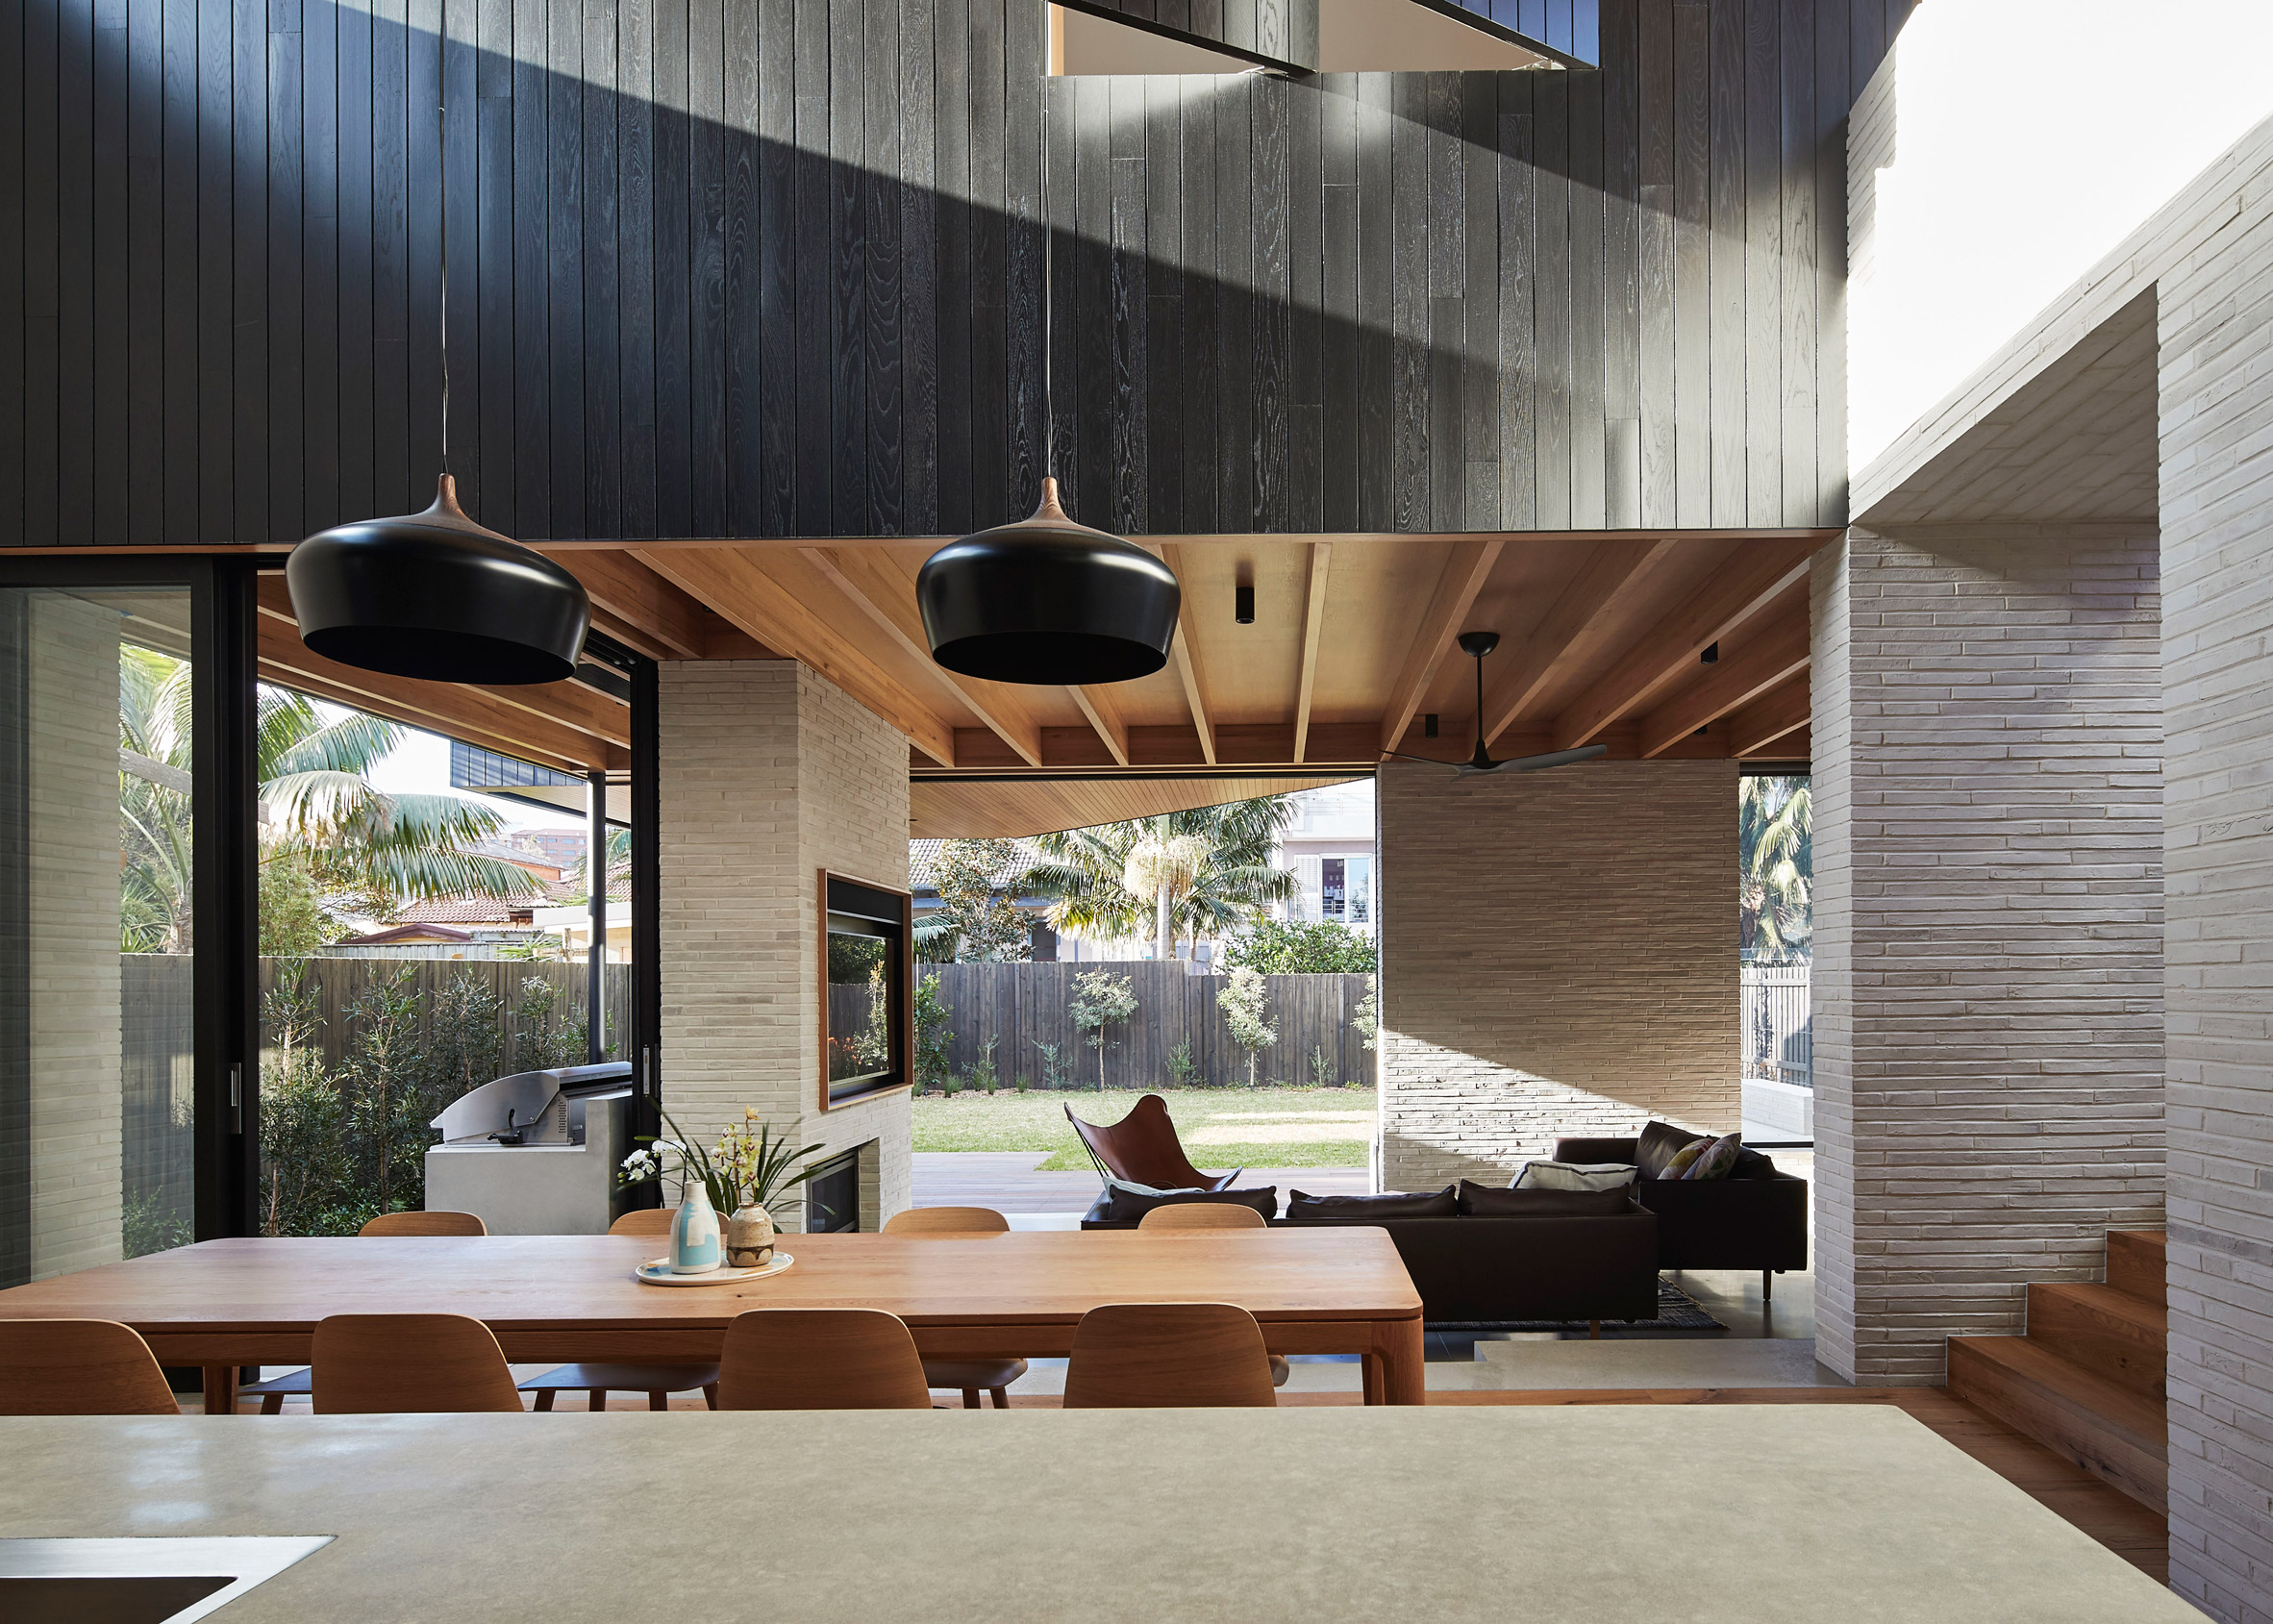 Andrew Burges' Sydney house pairs pale brickwork with blackened wood